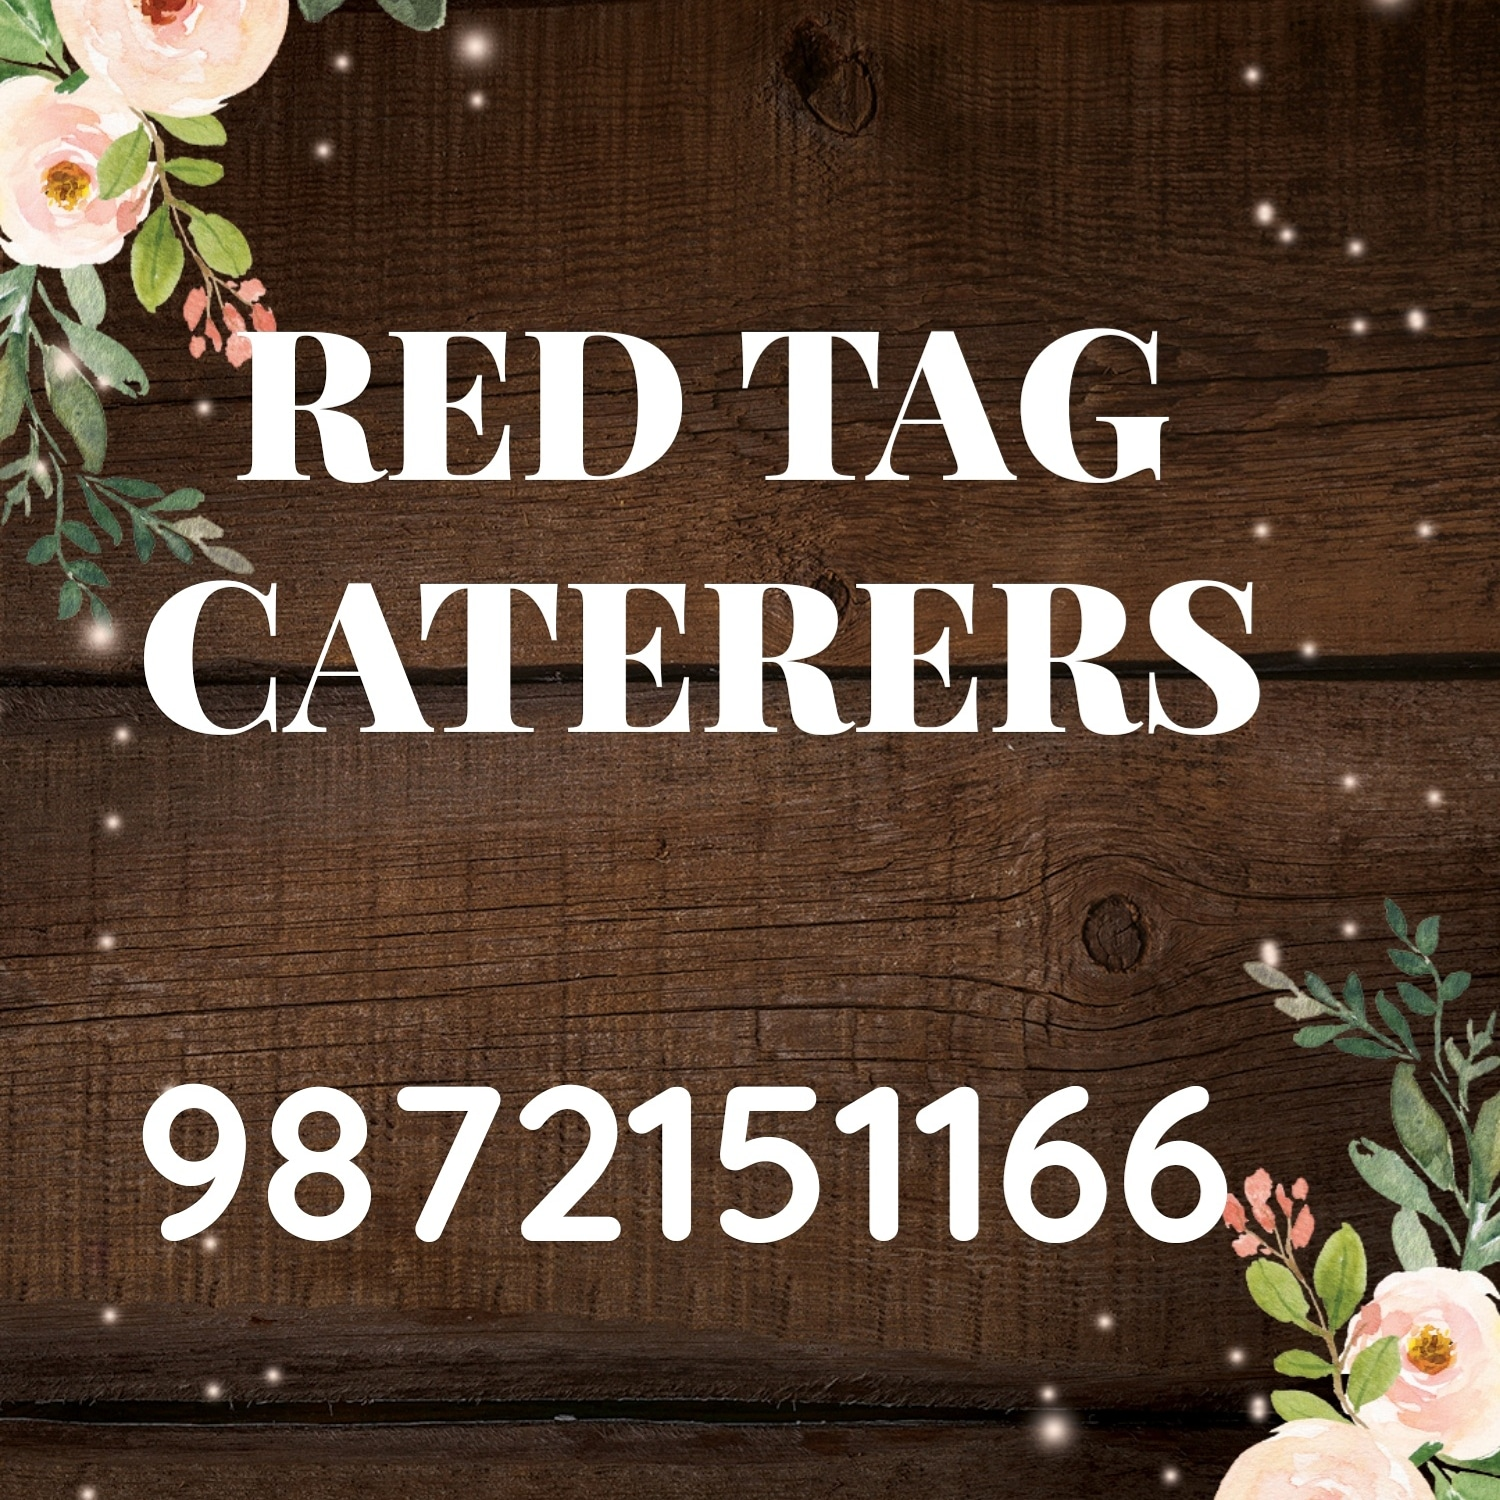 Red Tag Caterers, Wedding catering service in Chandigarh, premier catering service in Chandigarh, exclusive catering company in Chandigarh, top caterers in Chandigarh, cater in Chandigarh